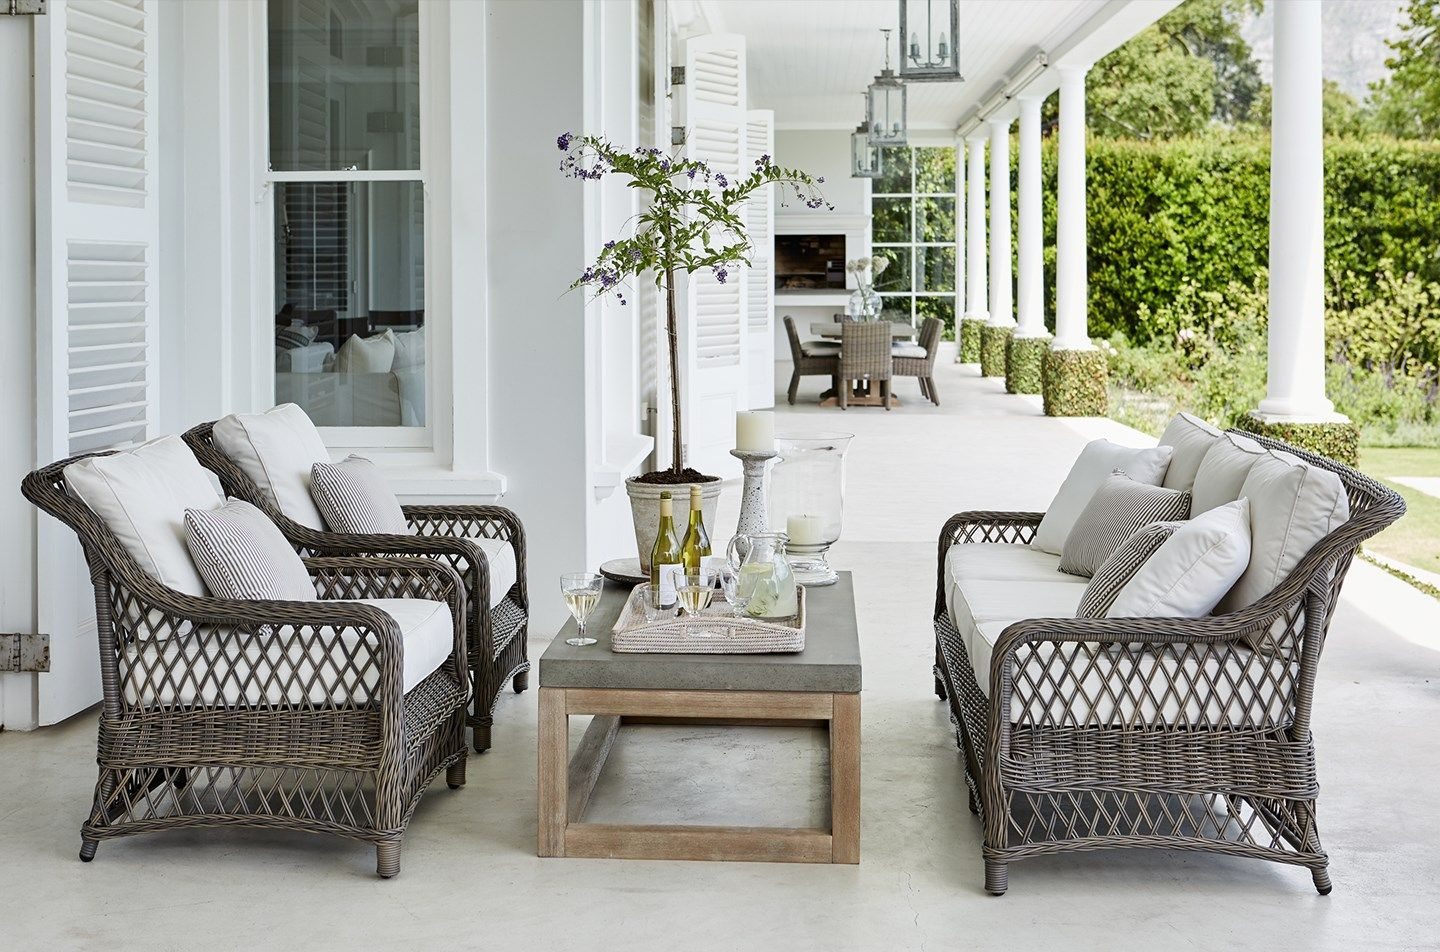 Home garden furniture  A most elegant and inviting outdoor area from Neptune  Summer House